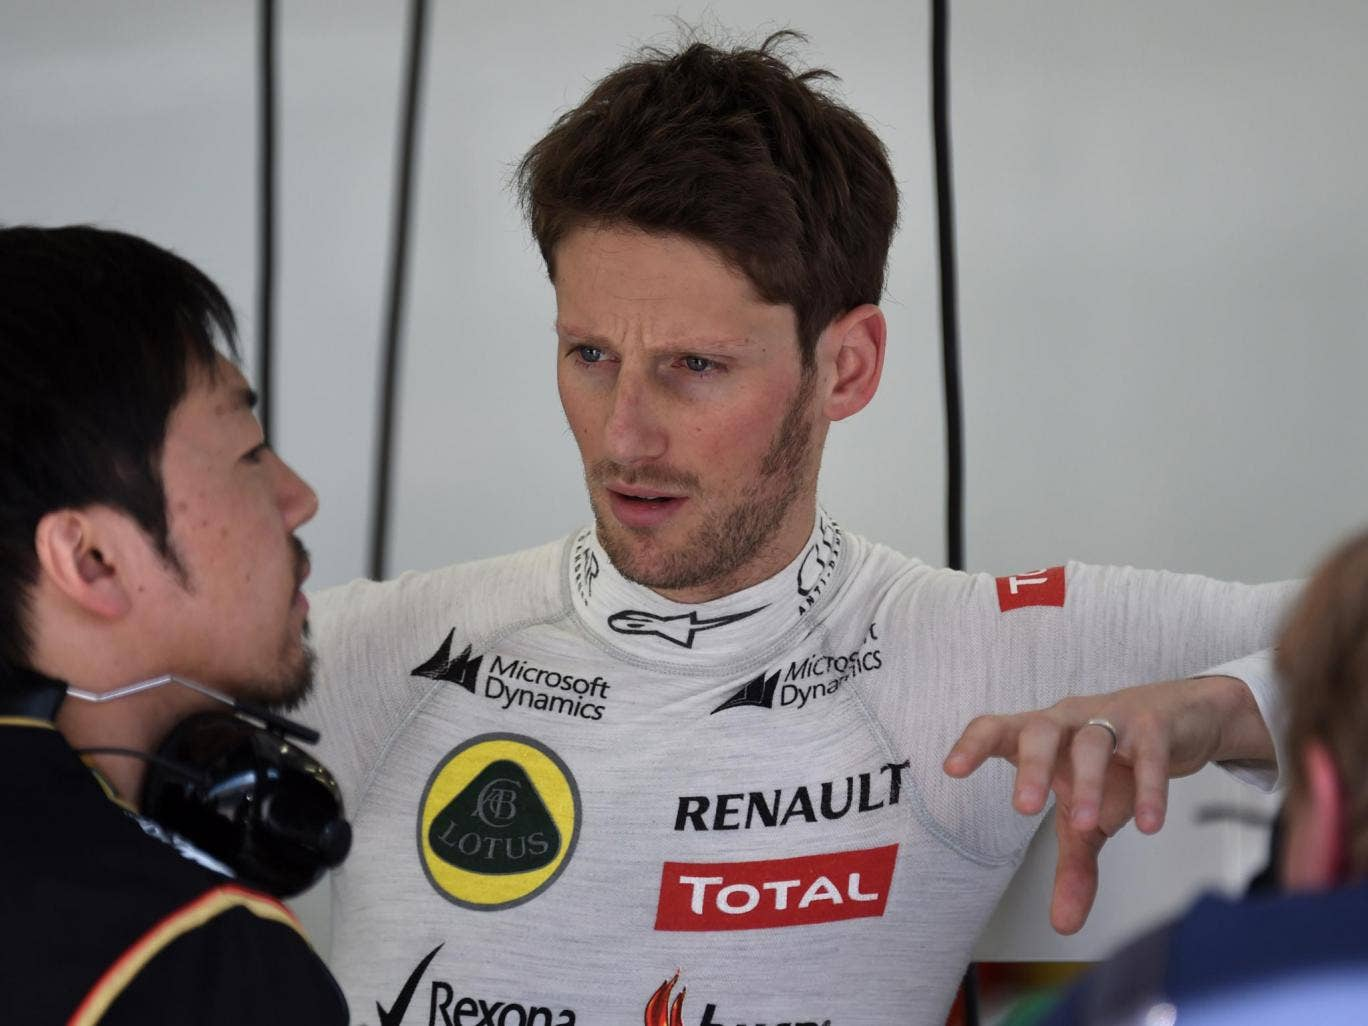 Romain Grosjean has revealed that he has been paid the money owed to him from the back-end of last season by team Lotus